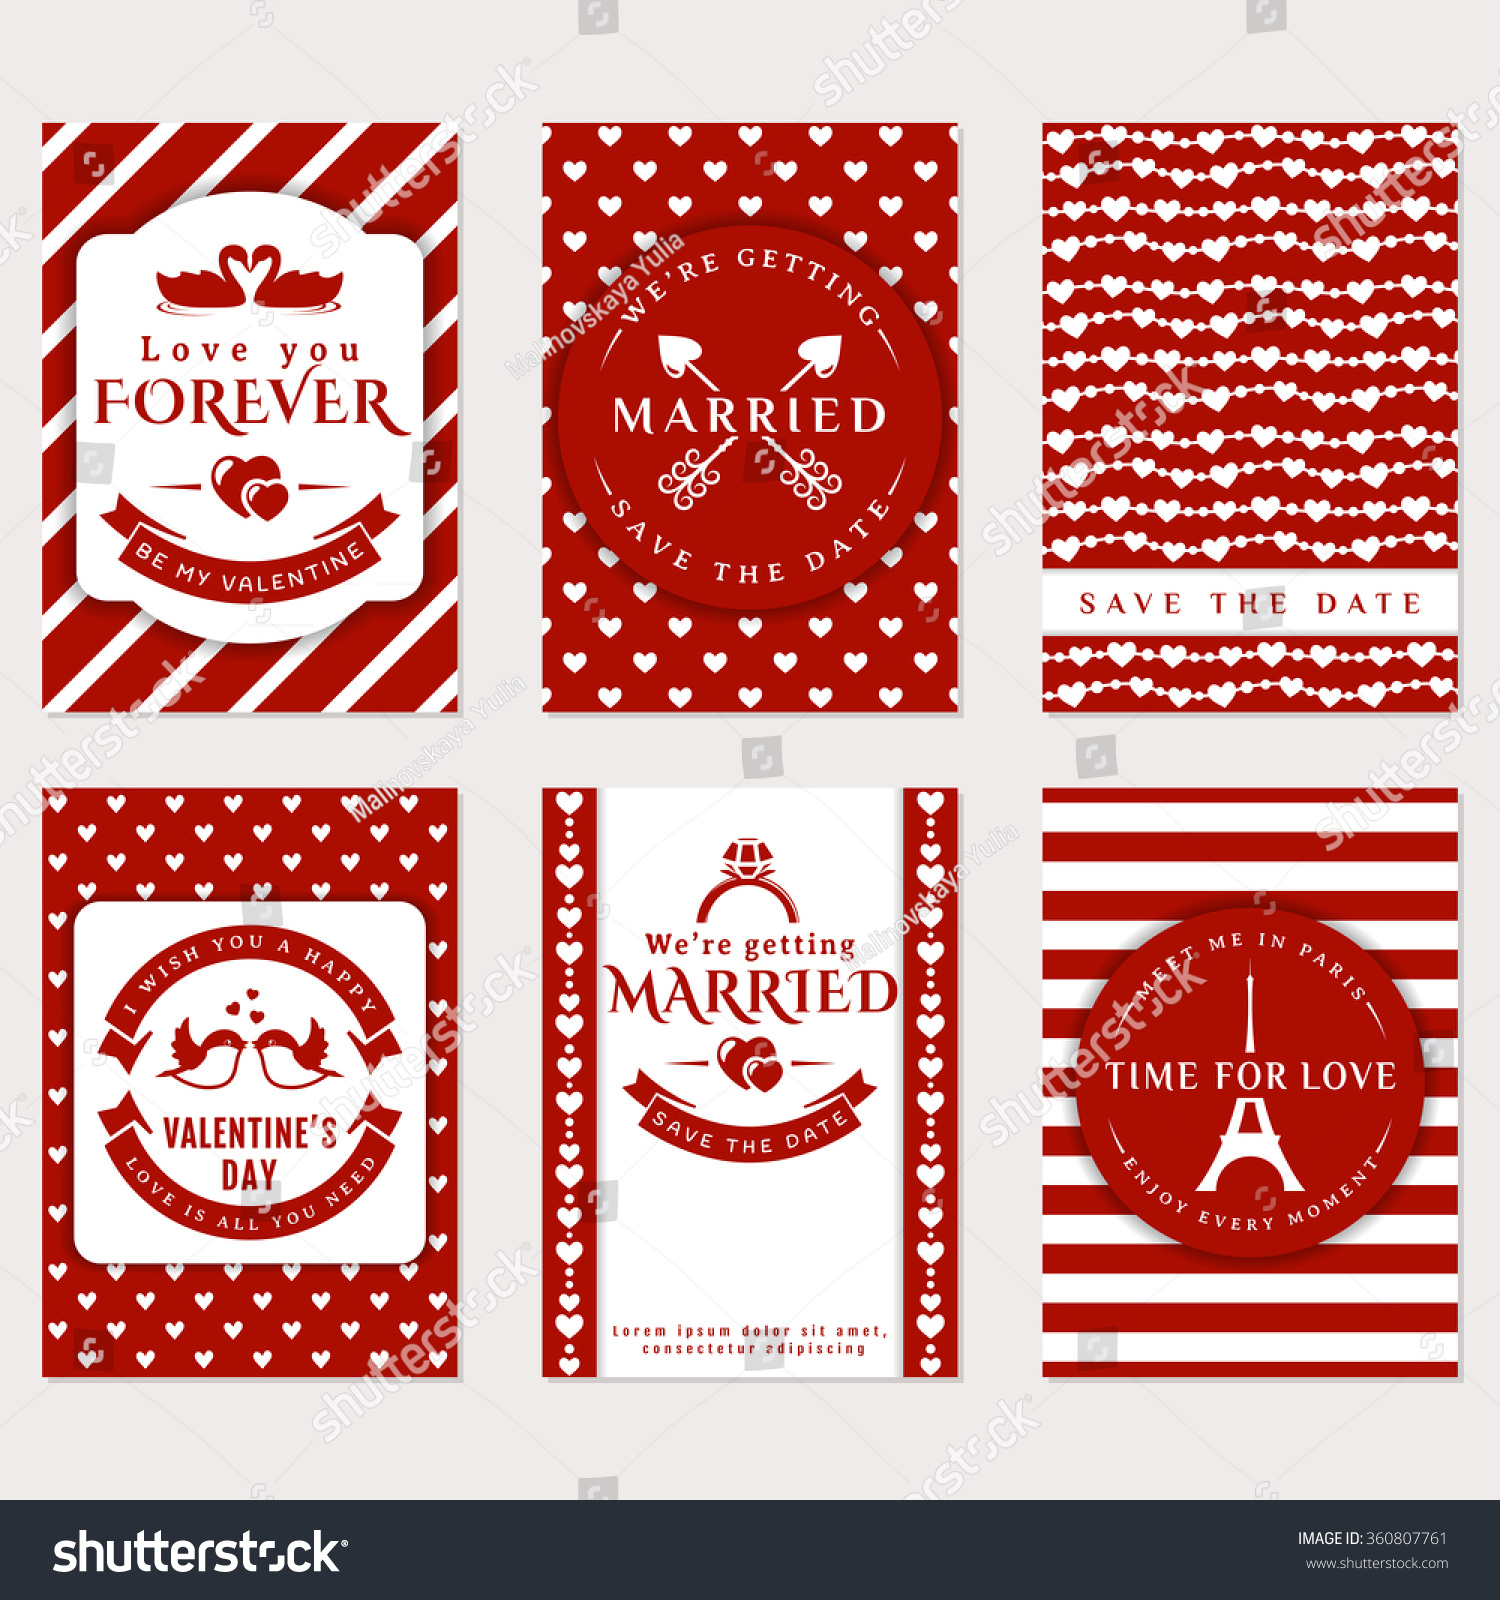 Collection Cute Vector Banners Romantic Flyers Stock Vector (Royalty ...